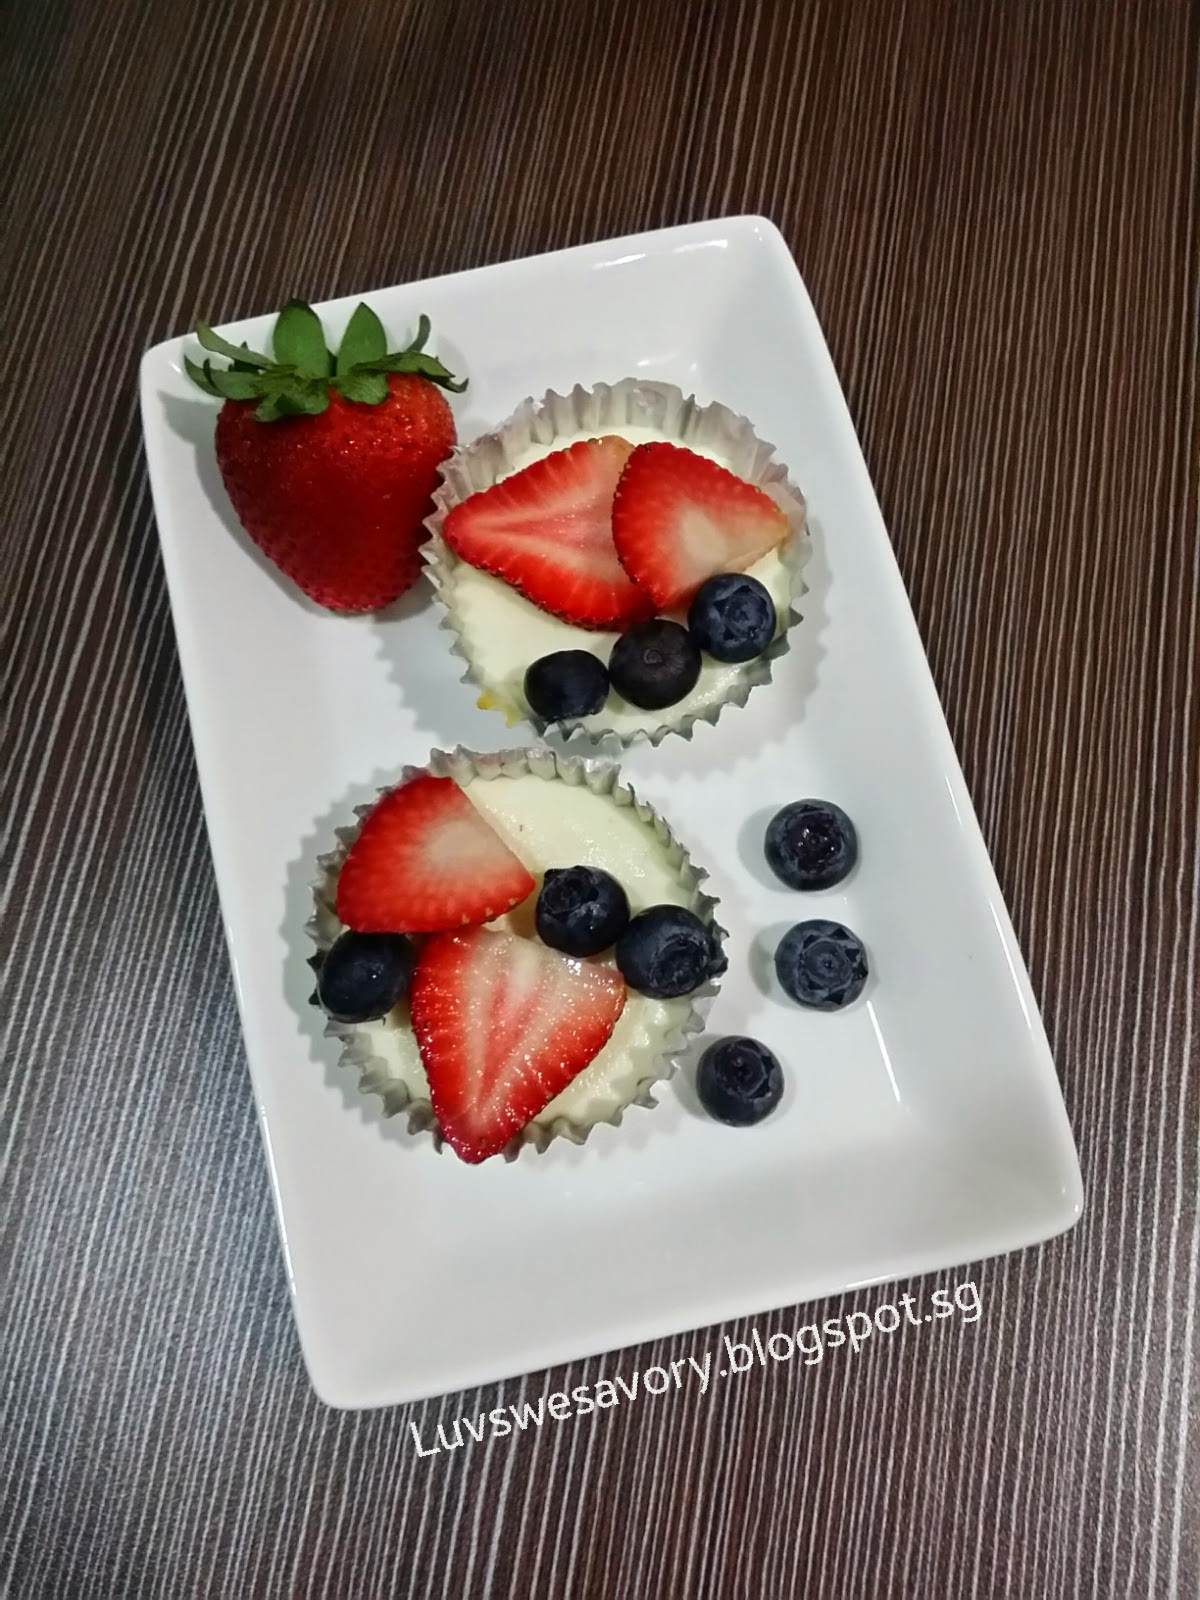 Luvswesavory: Red, White and Blueberry Cheesecake